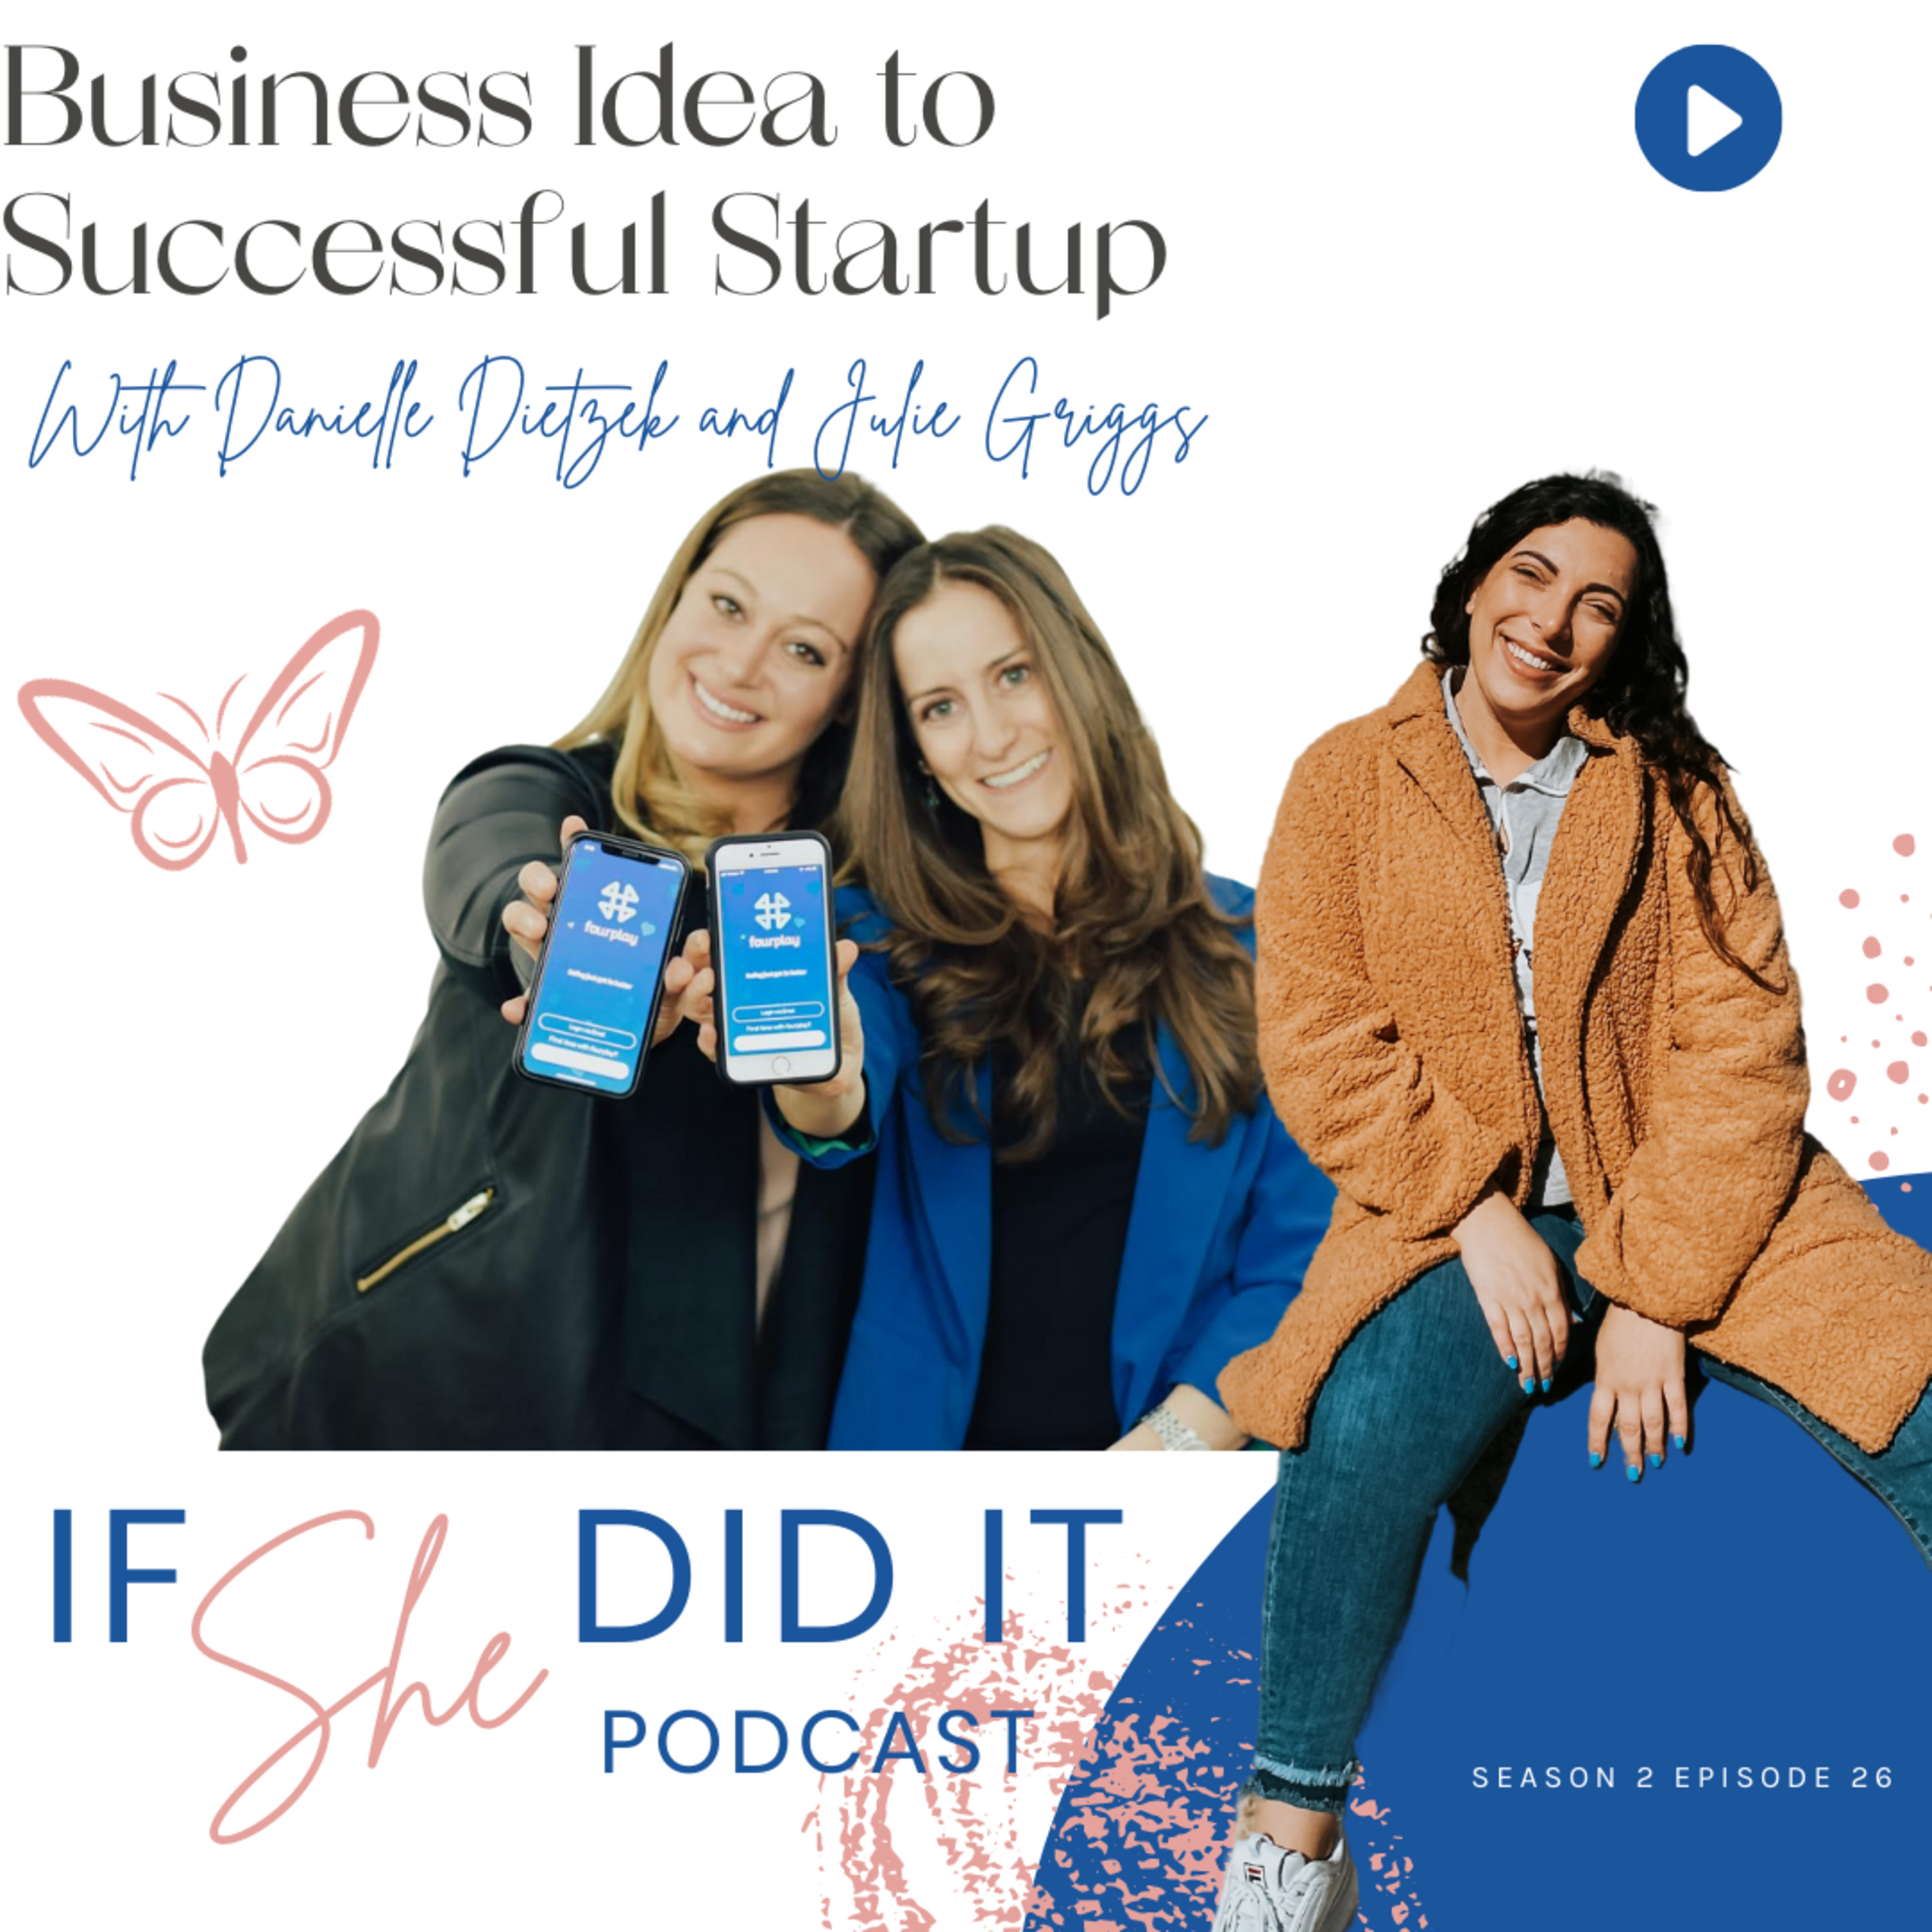 Business Idea to Successful Startup With Danielle Dietzek and Julie Griggs